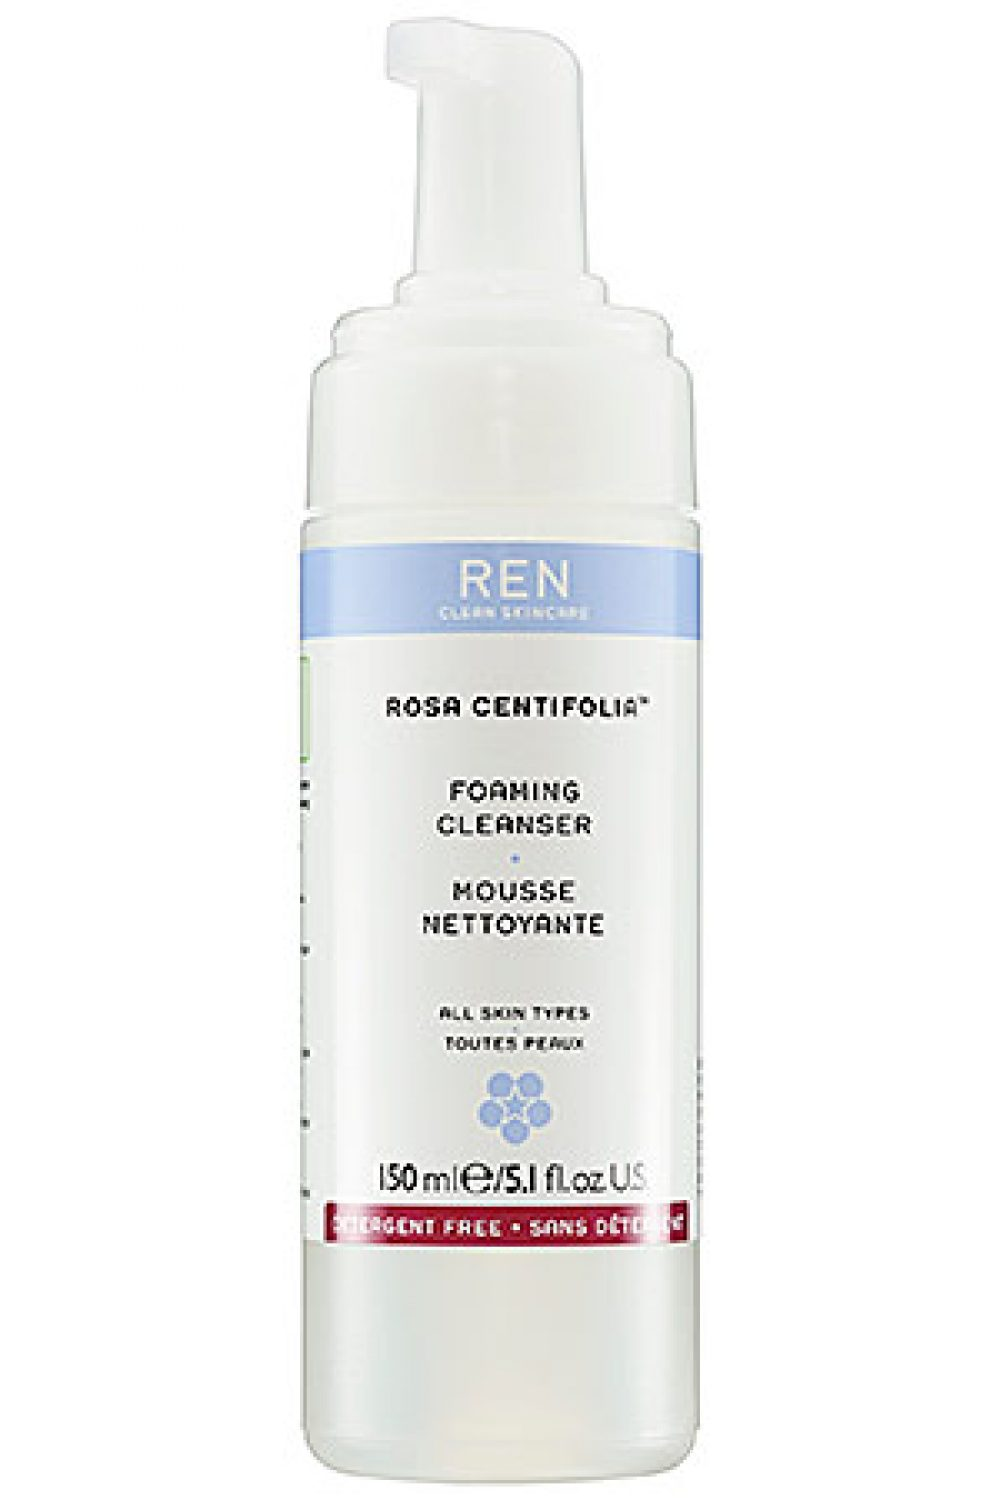 Looking for a Gentle Cleanser?